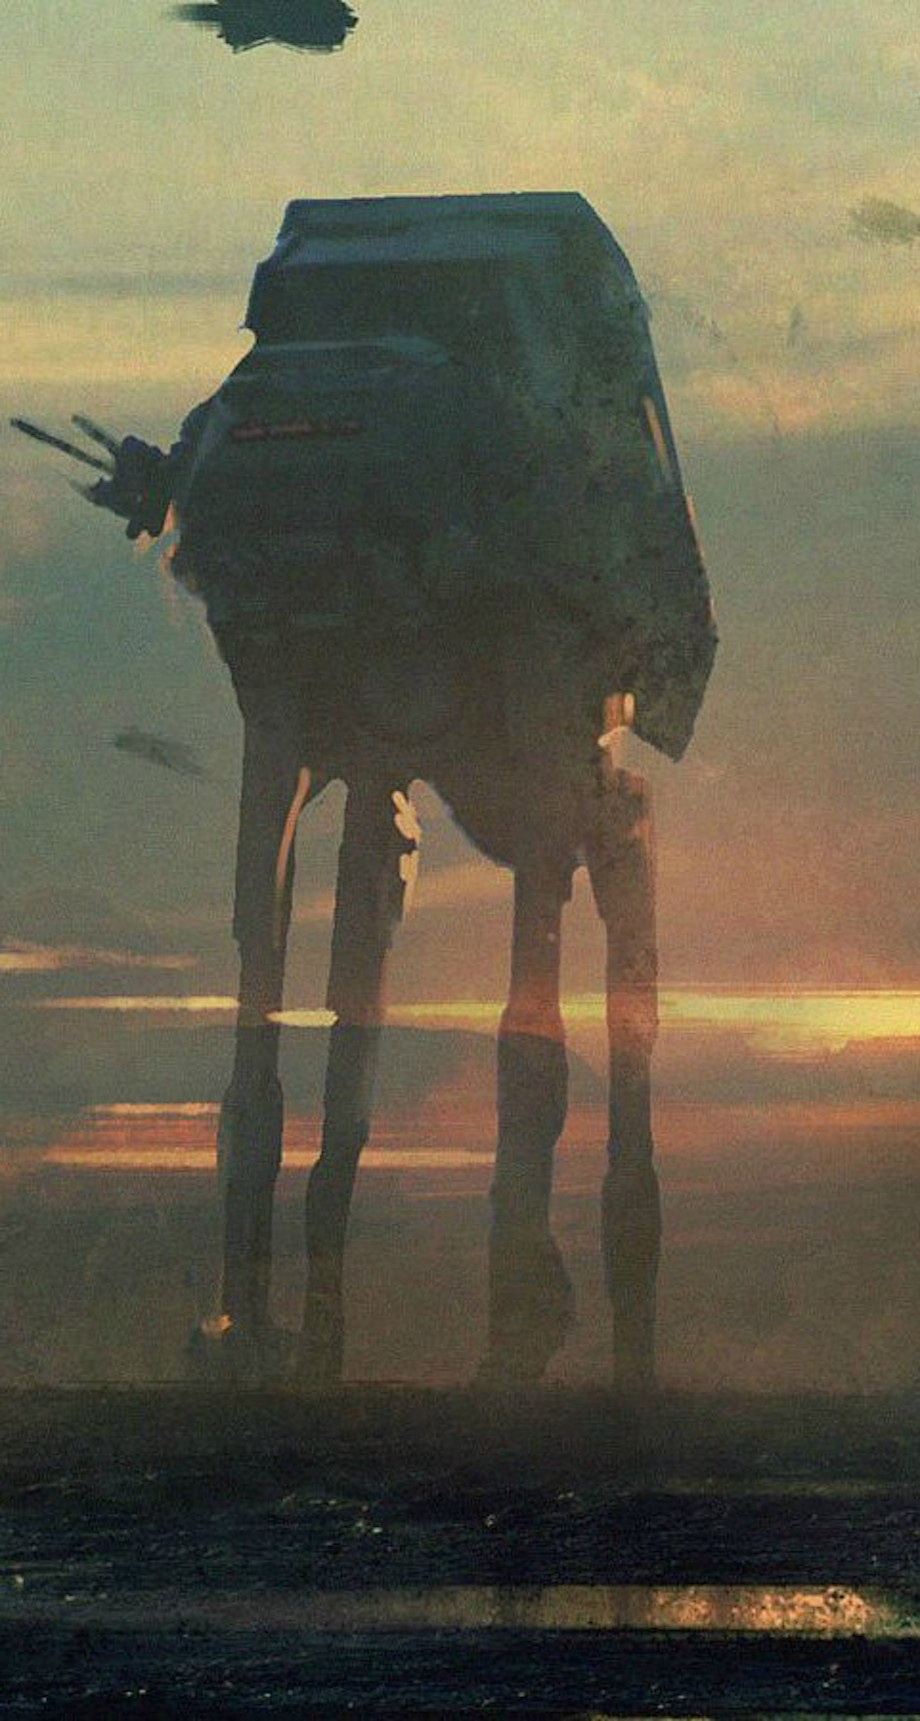 18 HD Phone Backgrounds, Star Wars, Simply Superb, Amazing, awesome, interesting, wallpapers, phone, background, images, pictures, unique, posters, interesting, creative